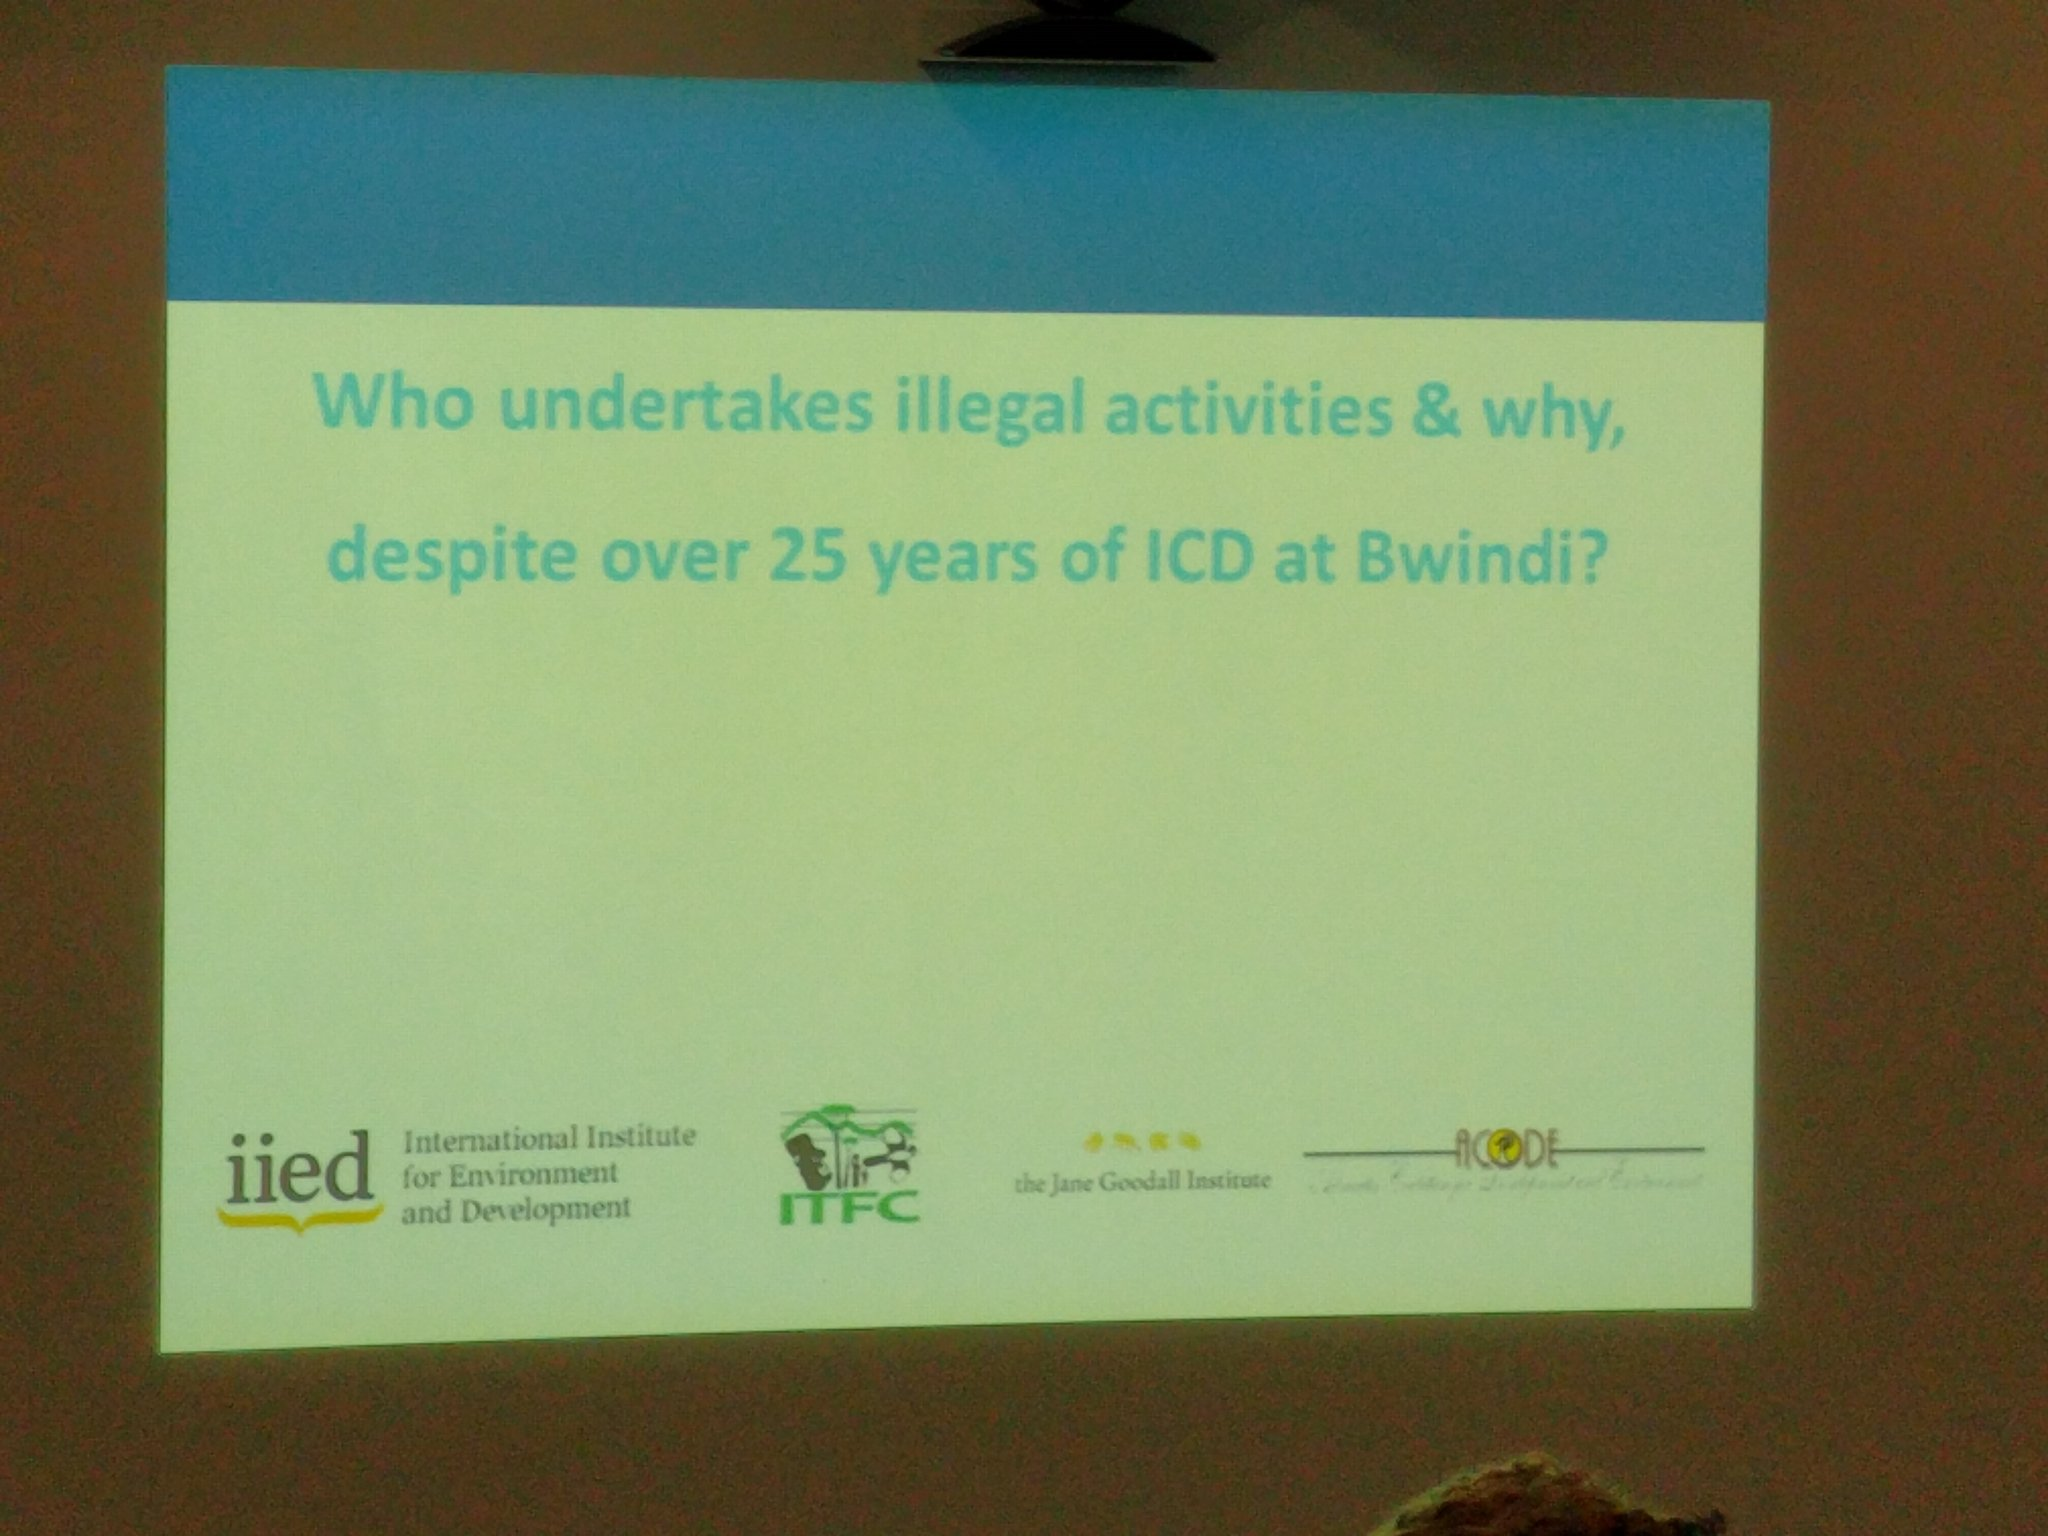 Learning about the indirect questioning technique used in the integrated conservation & development project at #Bwindi now. https://t.co/8cp1qvzChr